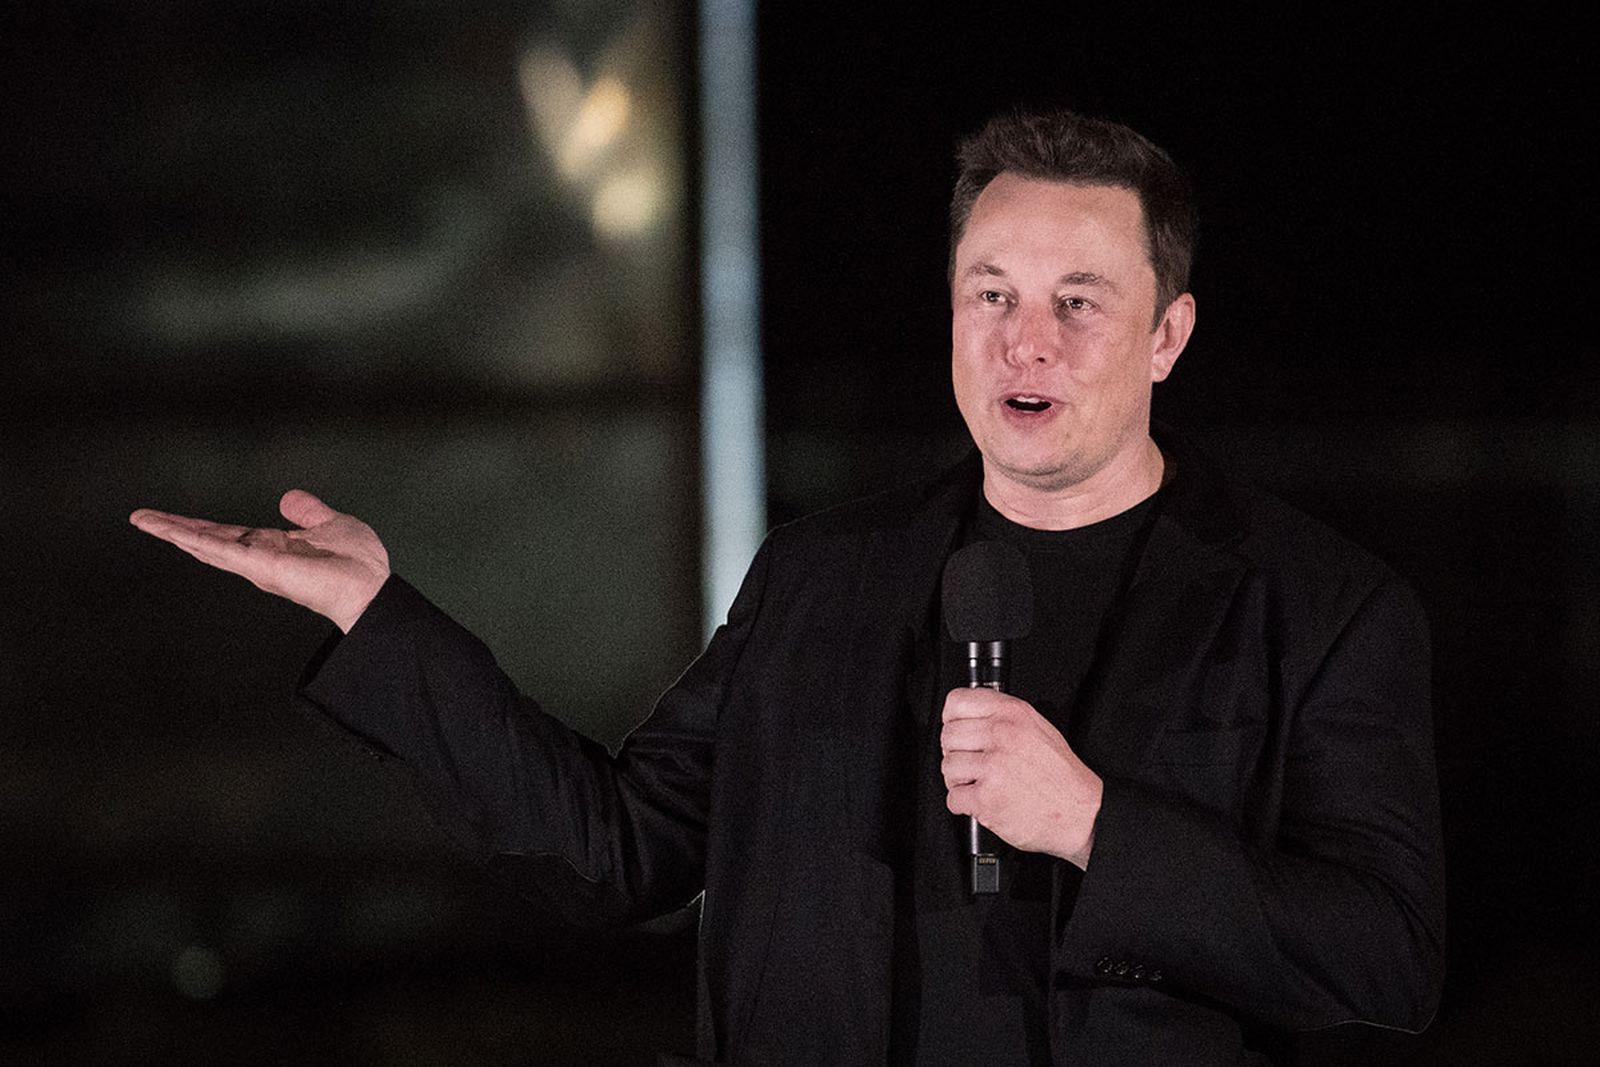 Elon Musk gives an update on the next-generation Starship spacecraft at the company's Texas launch facility